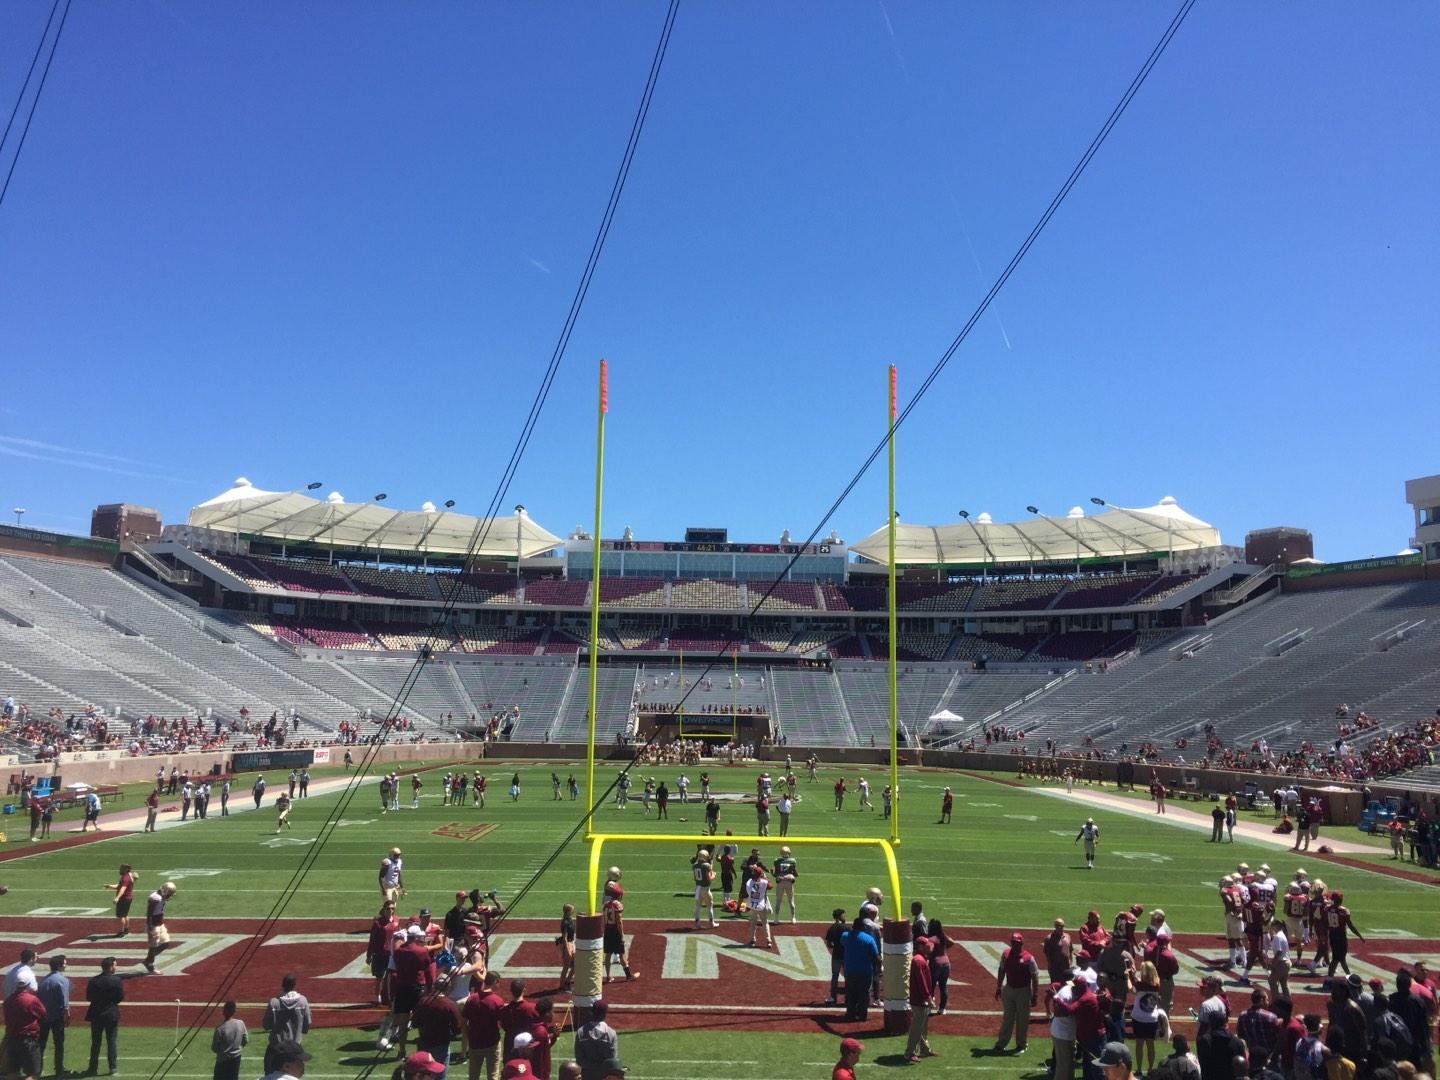 Bobby Bowden Field at Doak Campbell Stadium Section 1 Row 15 Seat 1